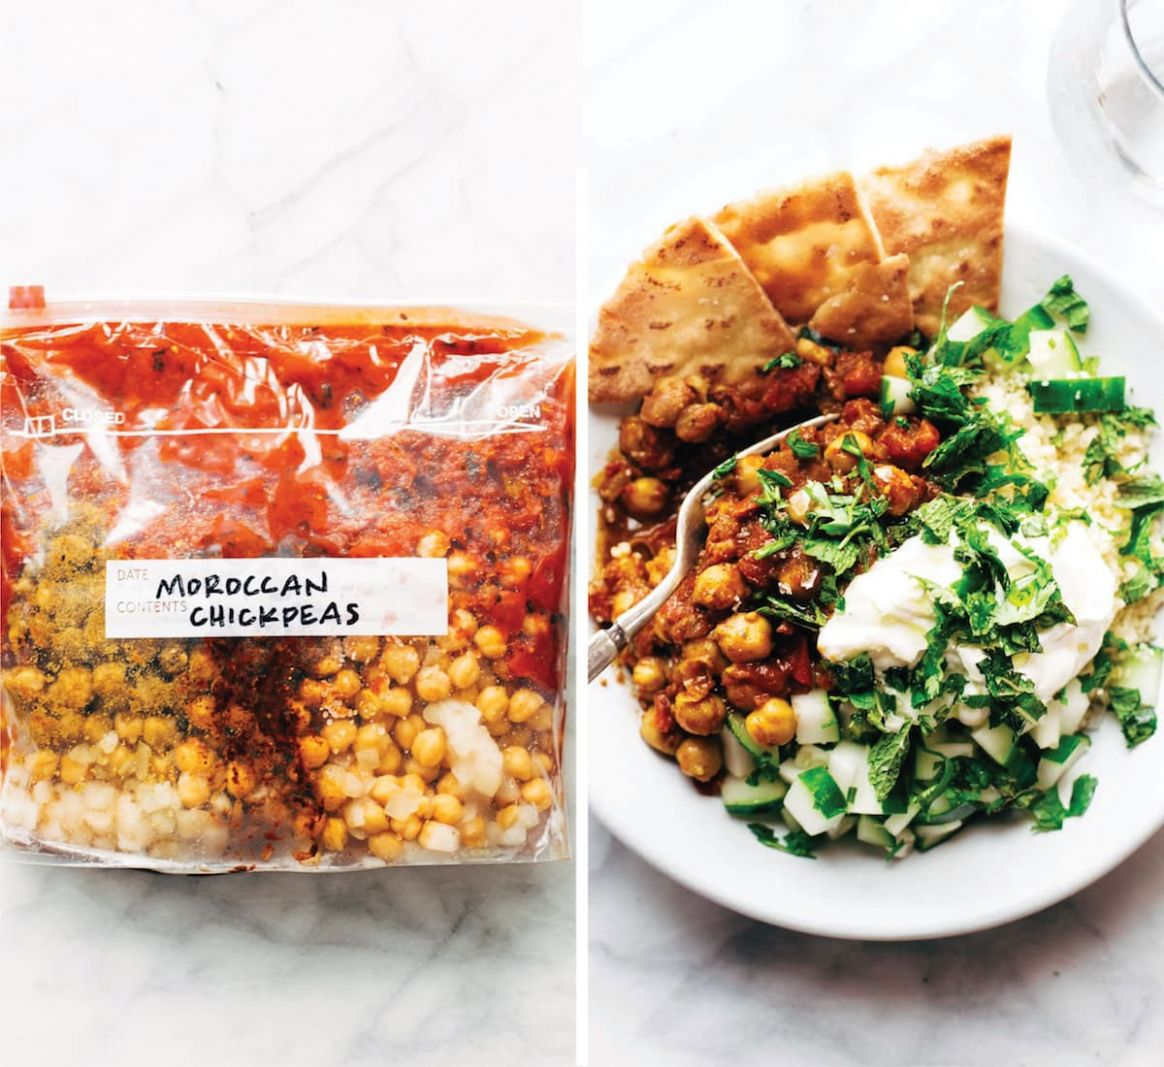 12 Healthy Freezer Meals (That You'll Actually Love) - Pinch of Yum